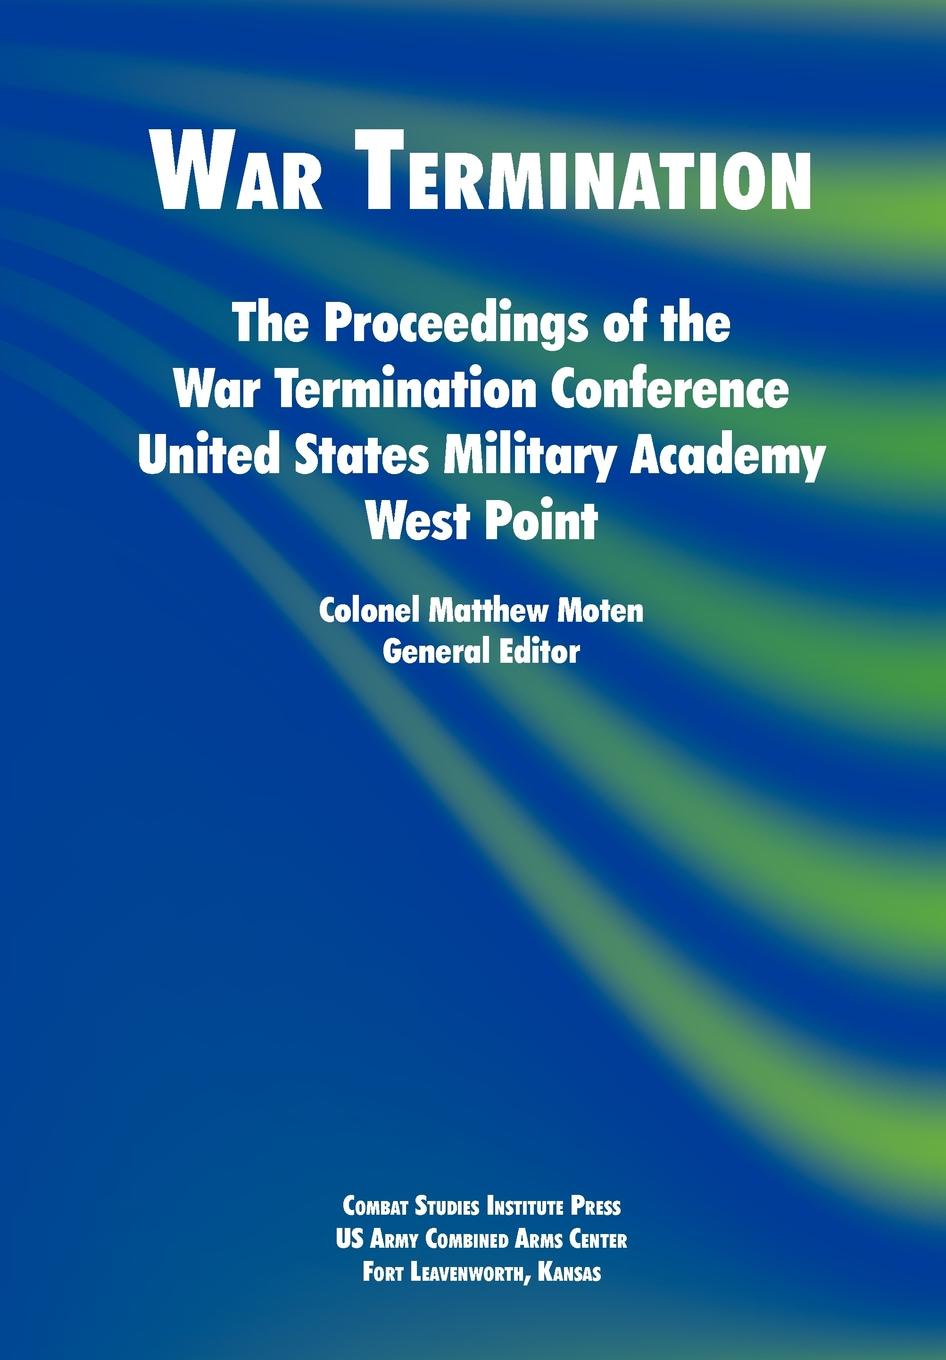 Combat Studies Institute War Termination. The Proceedings of the War Termination Conference, United States Military Academy West Point richard s lowry the gulf war chronicles a military history of the first war with iraq